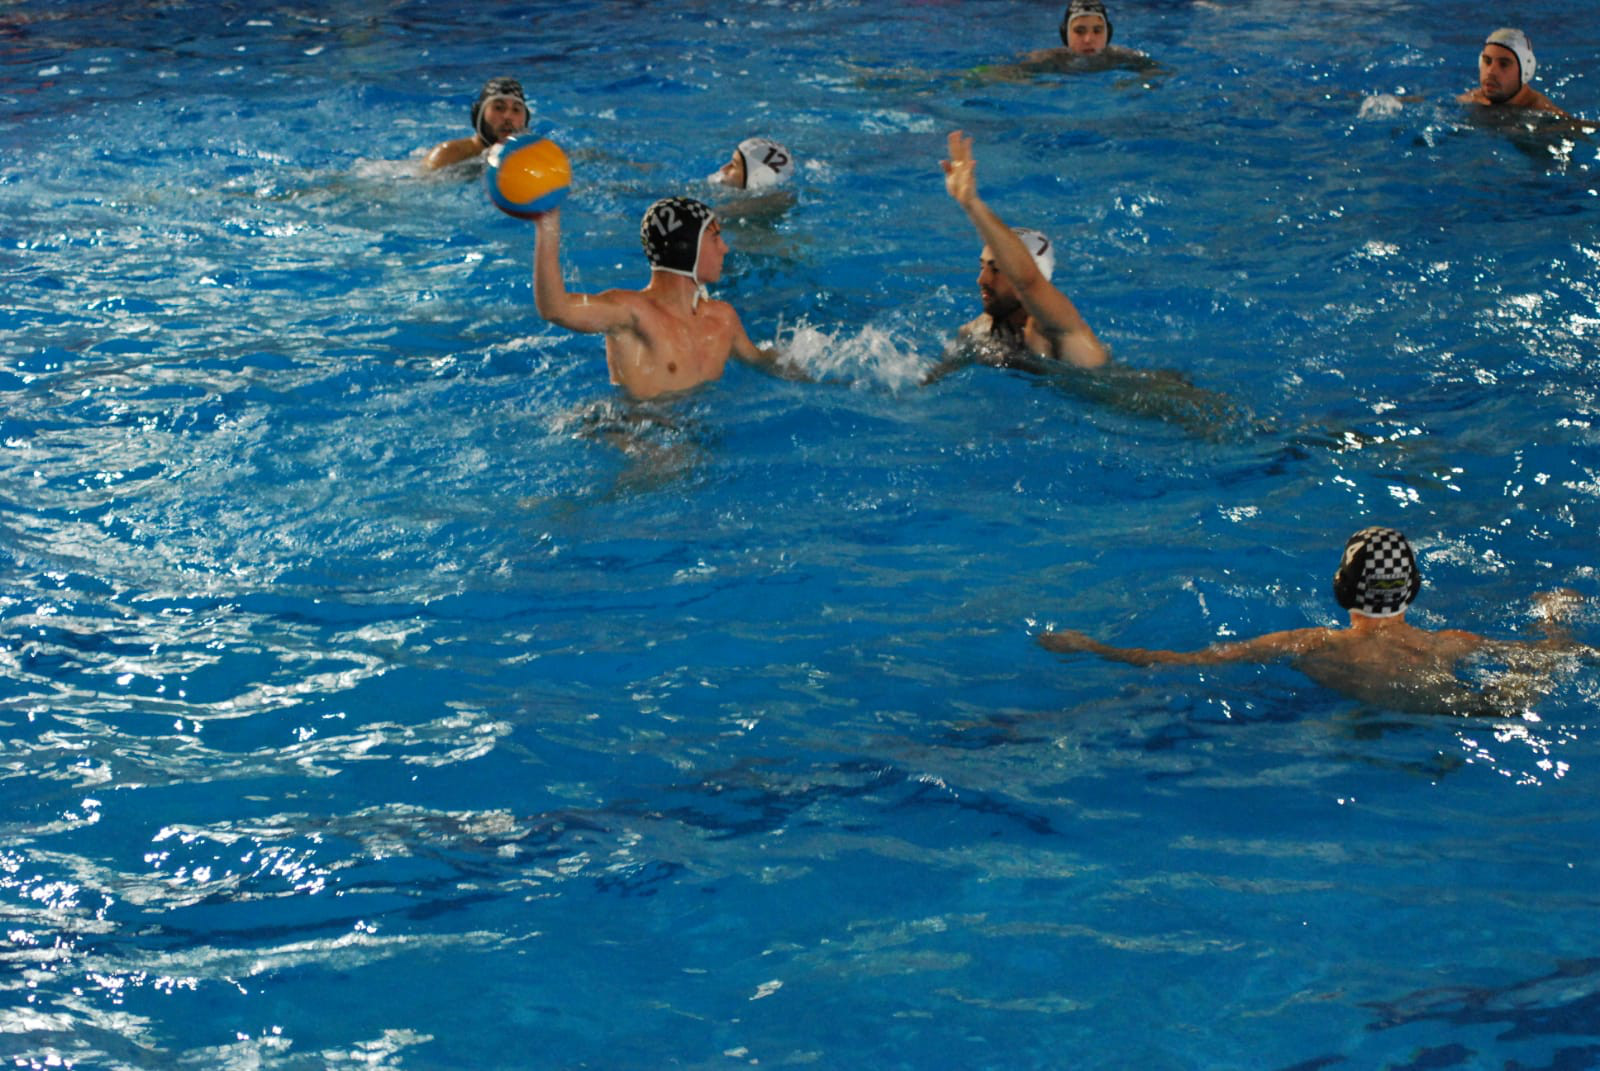 Waterpolo Carthago - Waterpolo Albacete